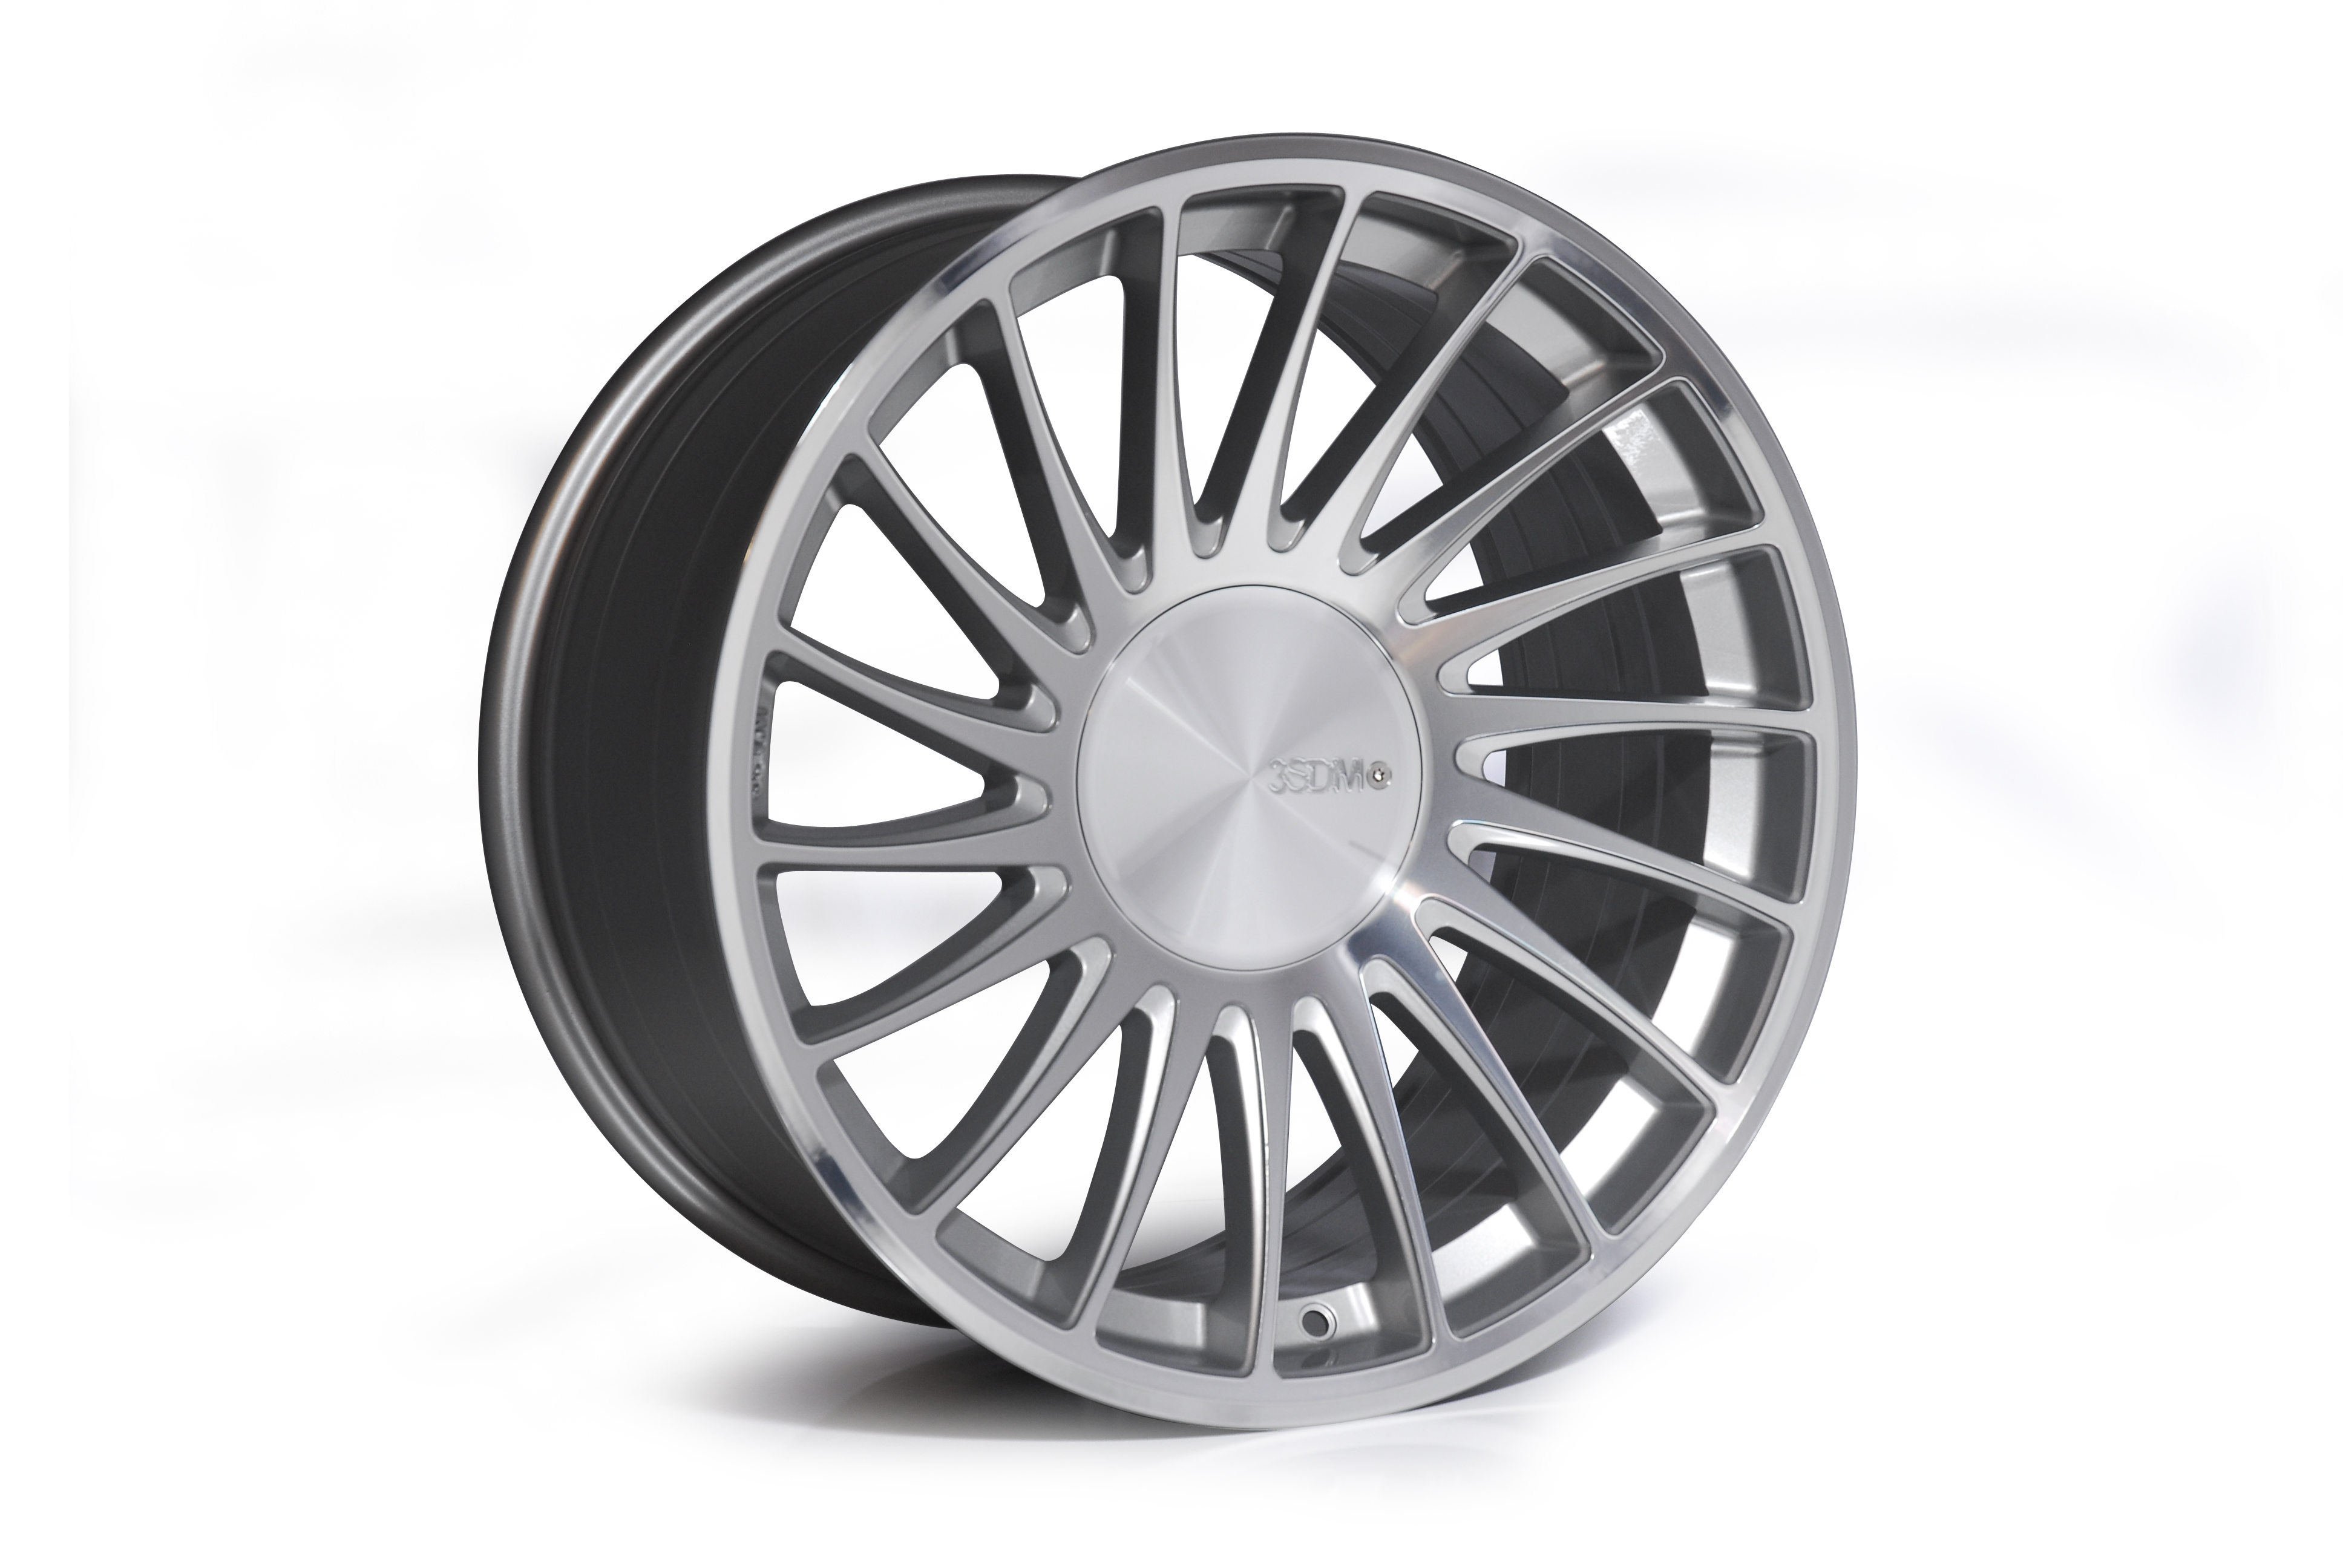 "NEW 18"" 3SDM 0.04 ALLOY WHEELS IN SILVER POLISHED WITH DEEPER CONCAVE 9.5"" REAR et35/40"